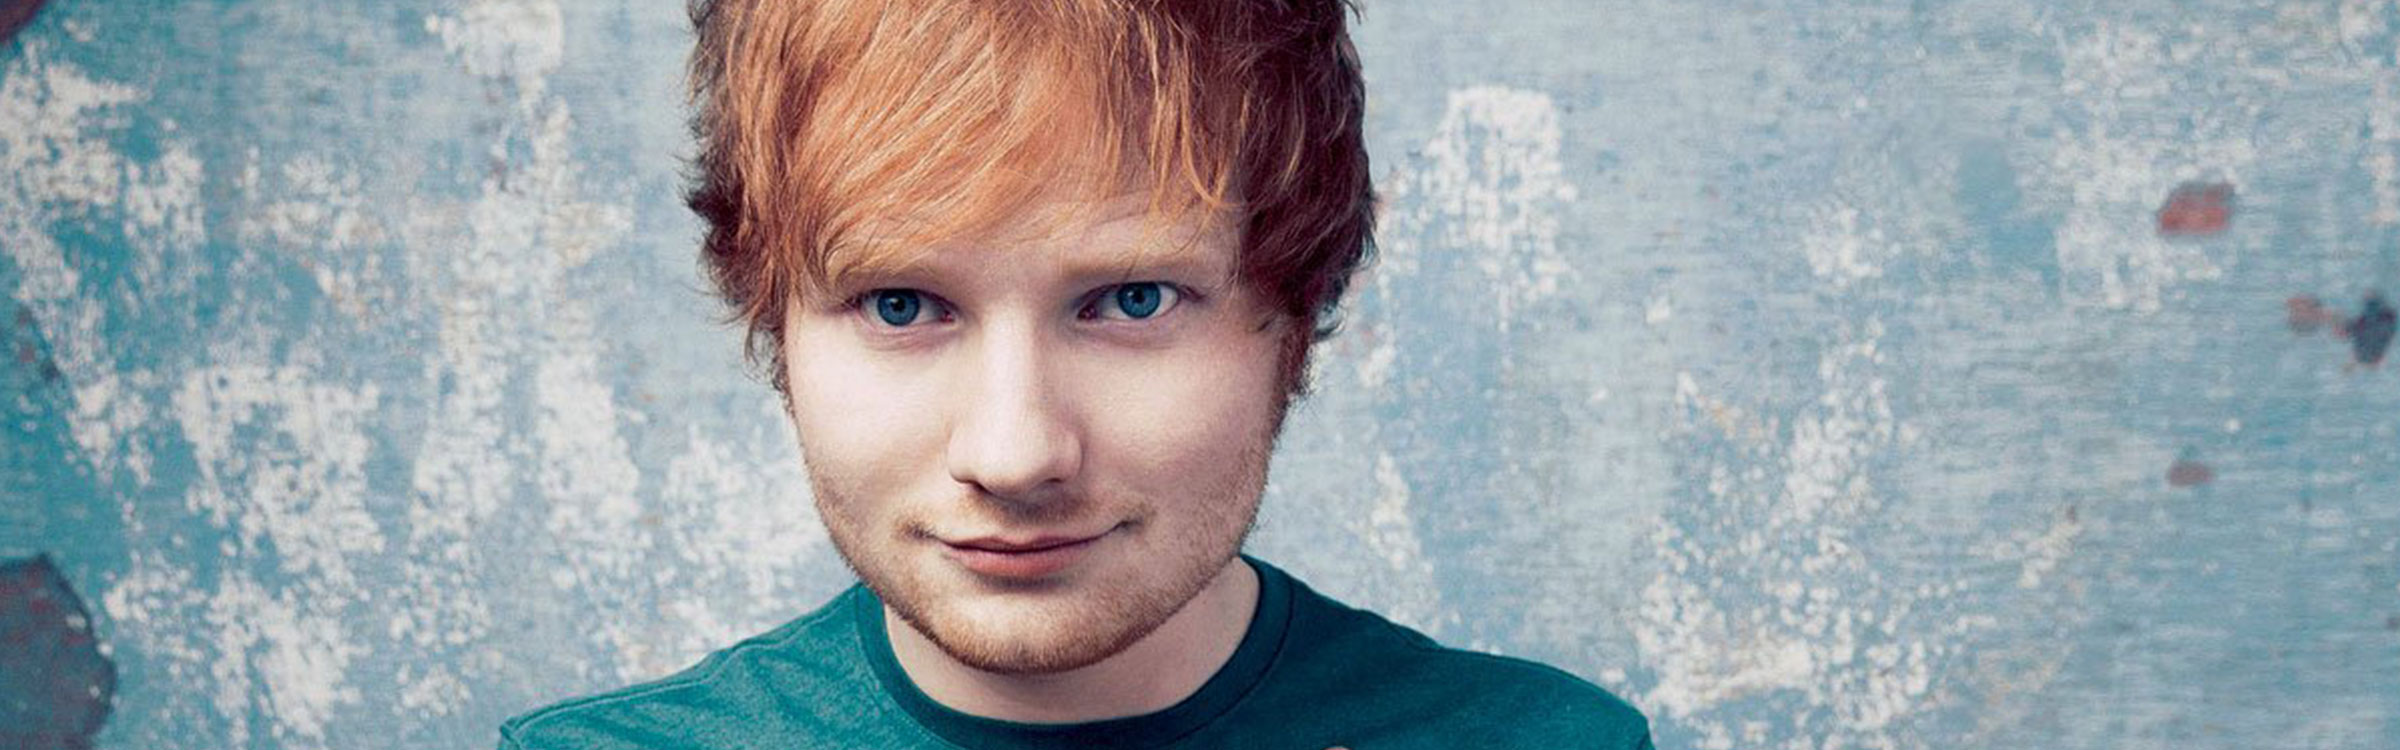 Ed sheeran header 4 april